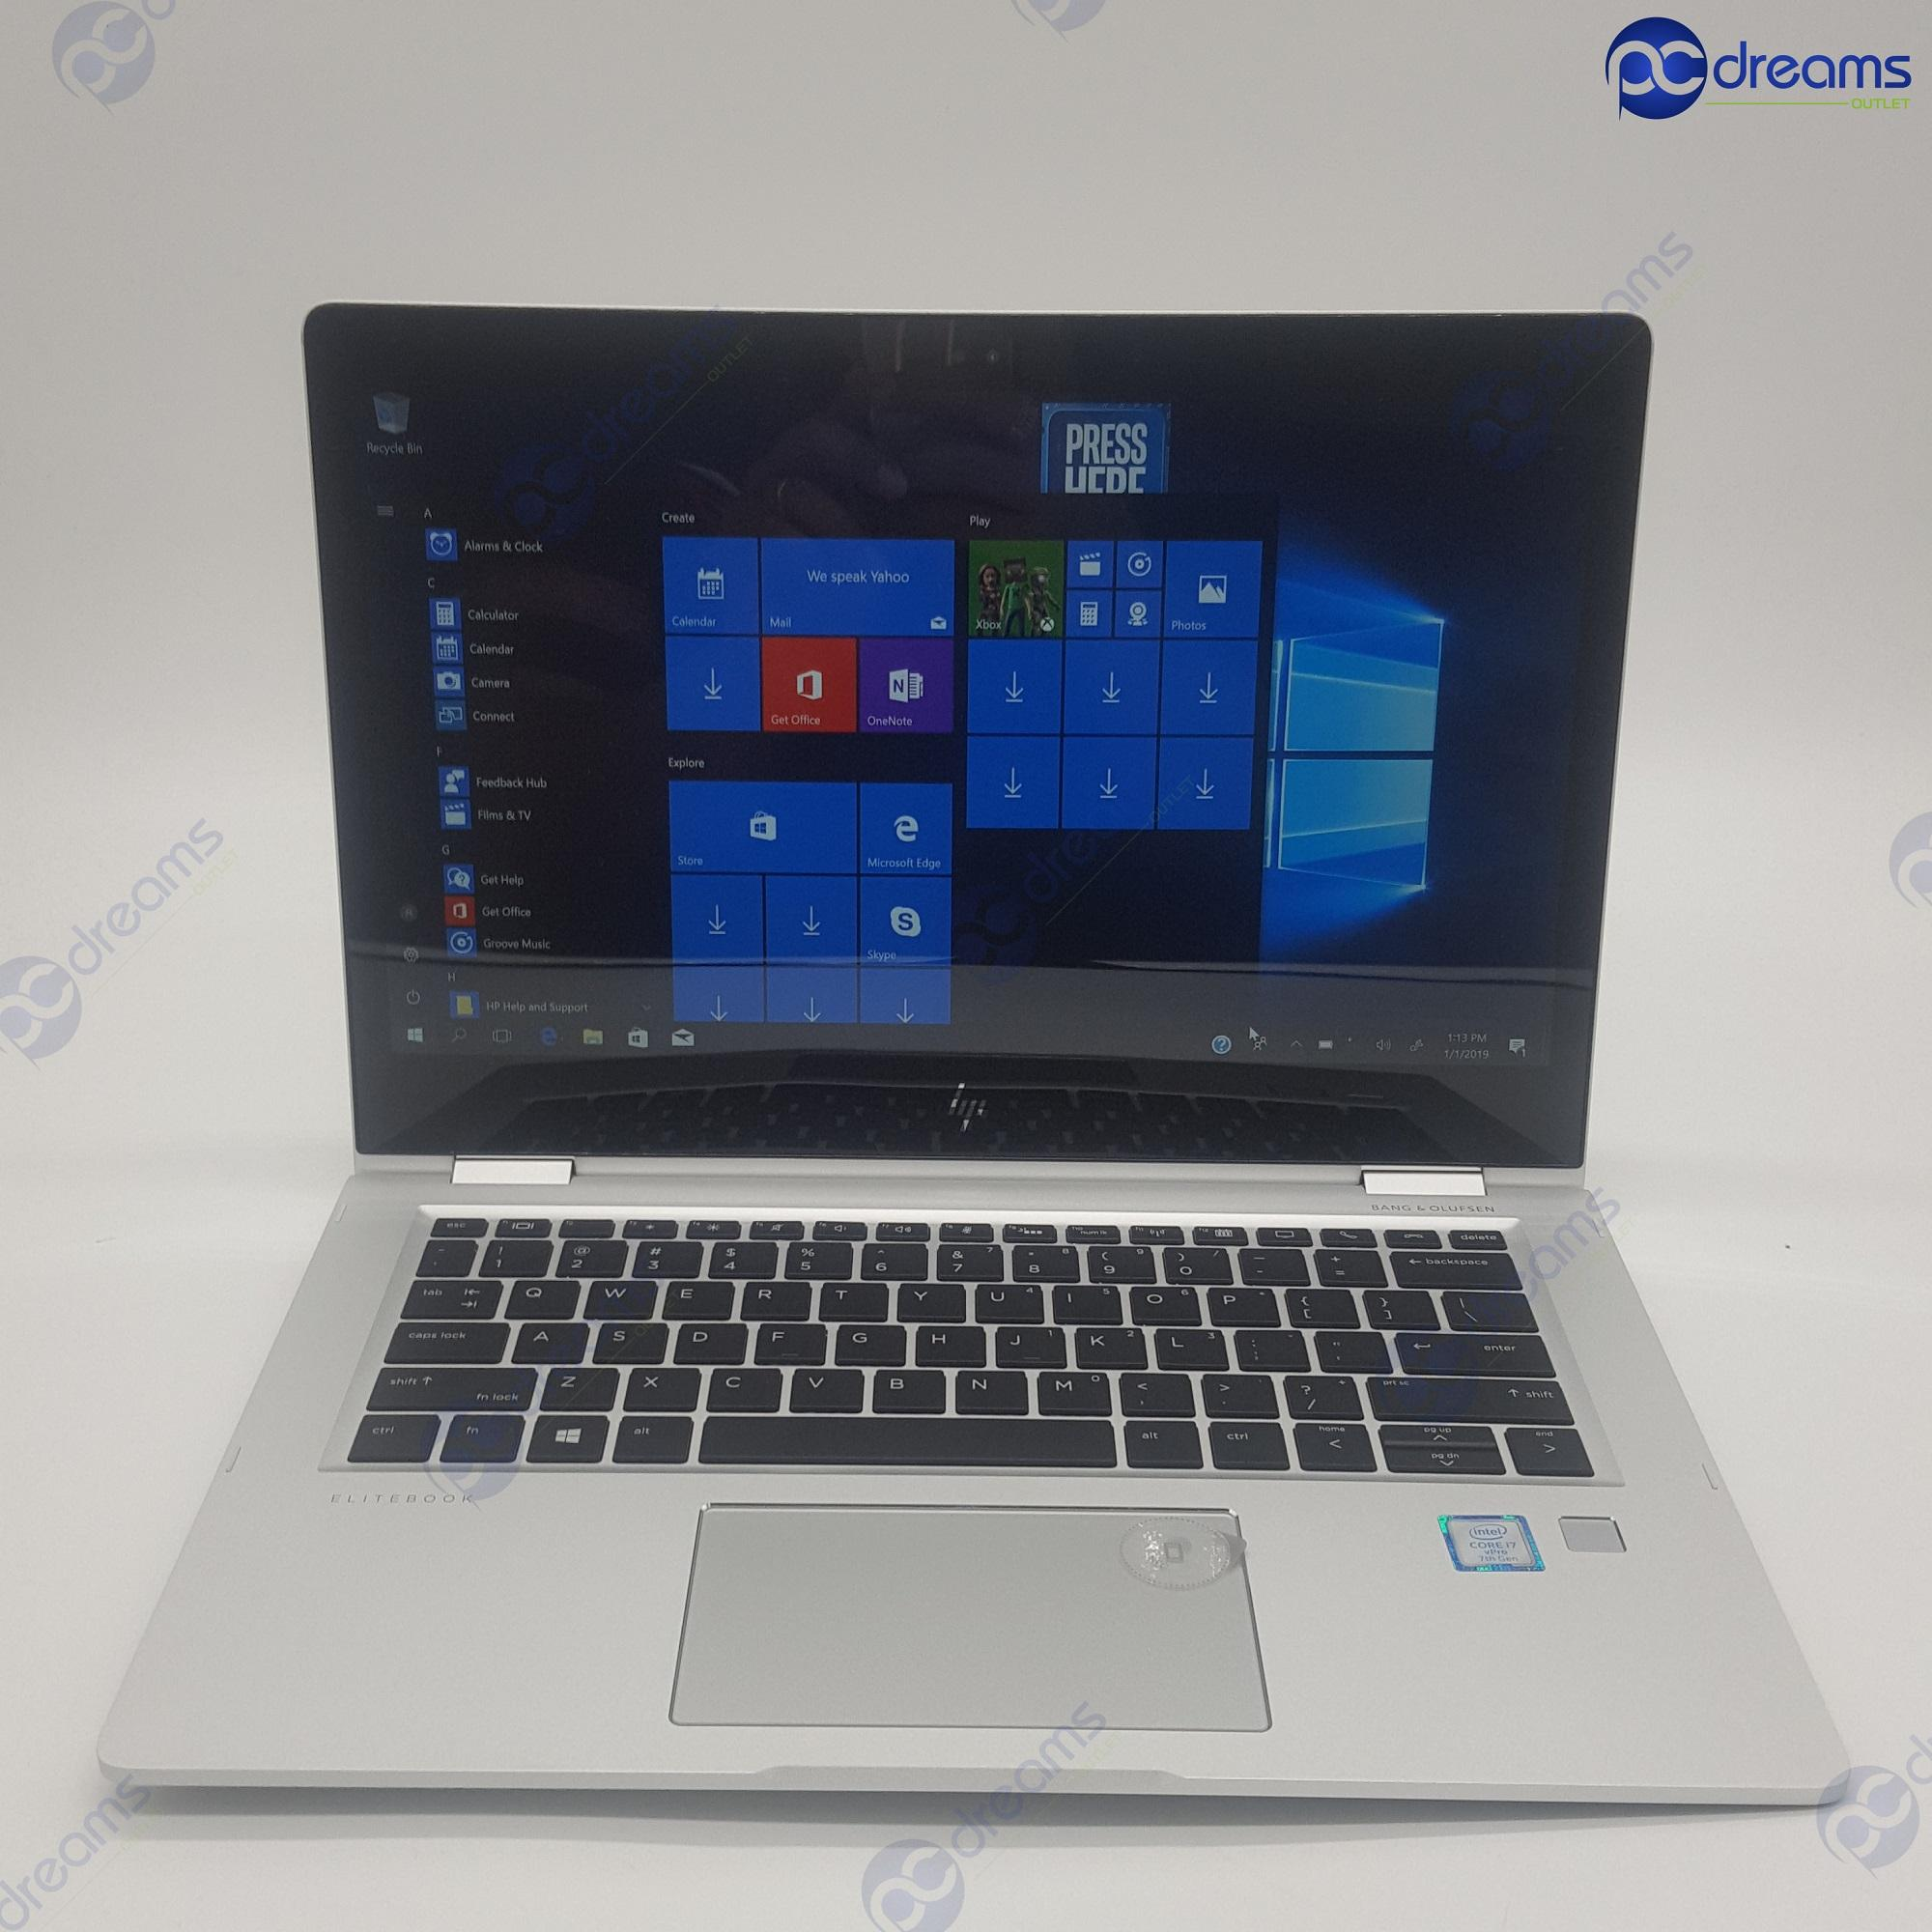 HP ELITEBOOK X360 1030 G2 (1WB83AV) i5-7300U/16GB/512GB Turbo Drive G2 [Premium Refreshed]